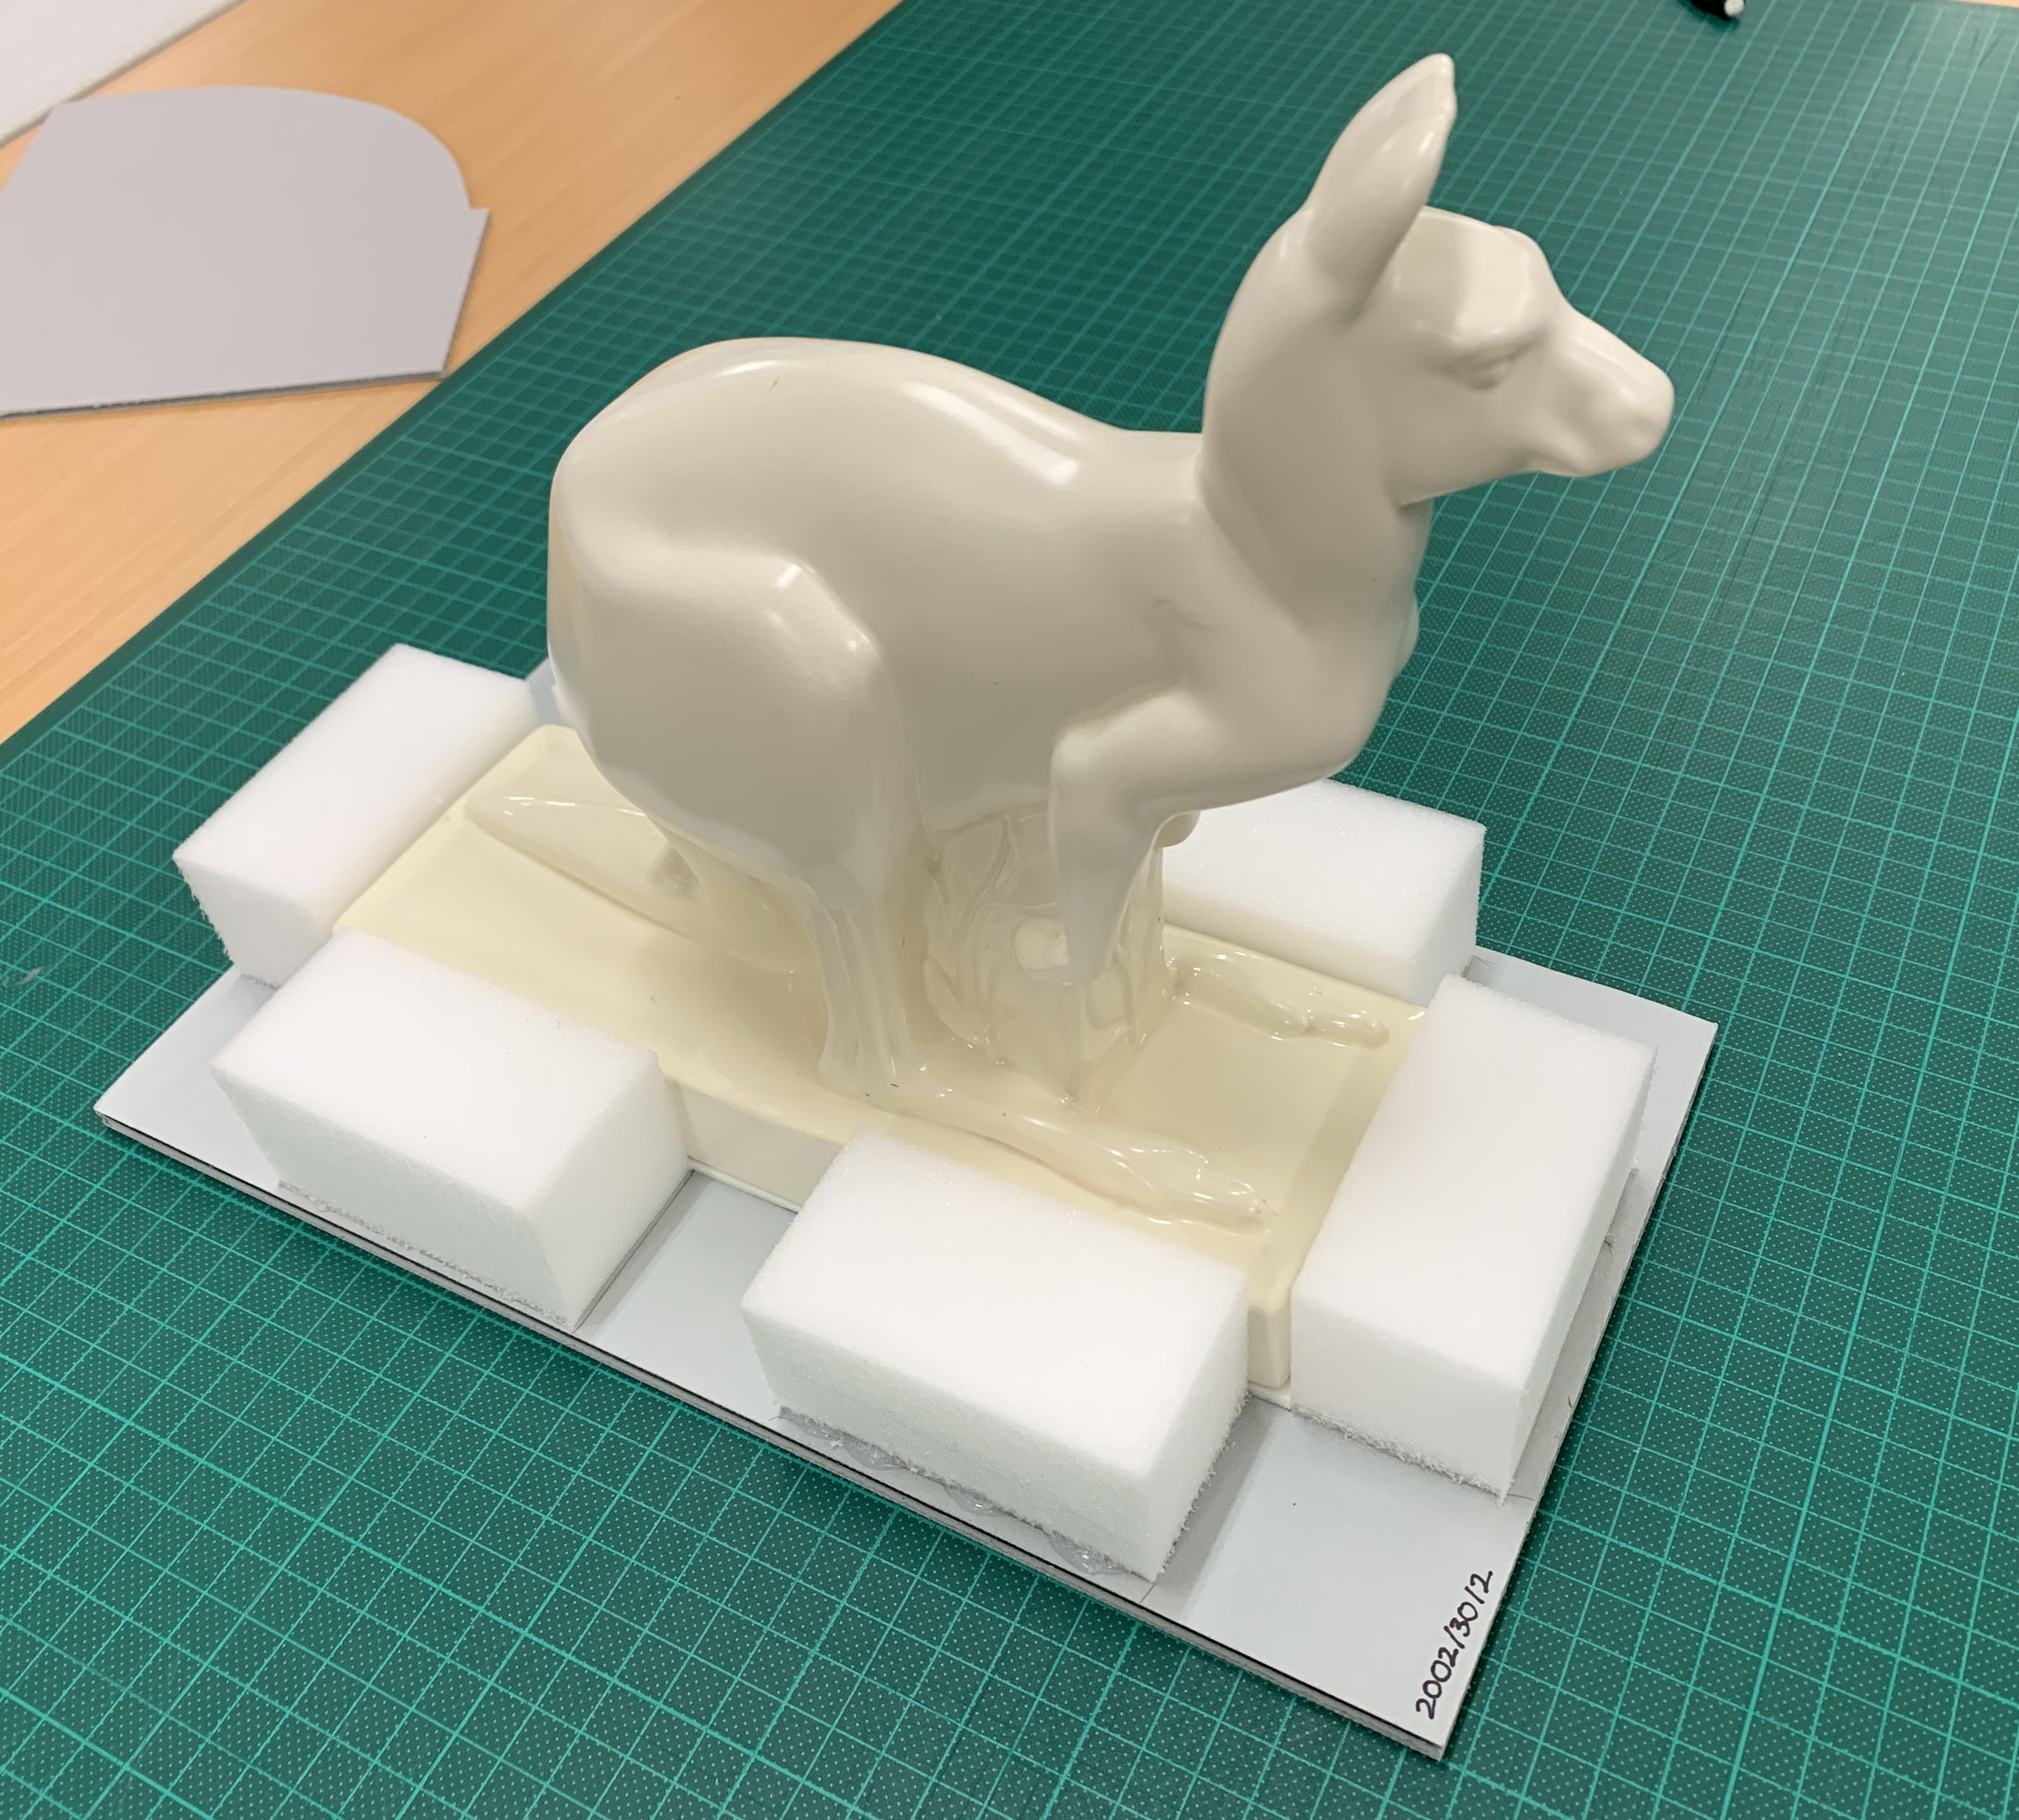 White earthenware kangaroo sitting on a stiff plastic base. The kangaroo figure itself has rectangular base around which have been glued six foam blocks – two each along the long sides of the base, and one each along the short sides.